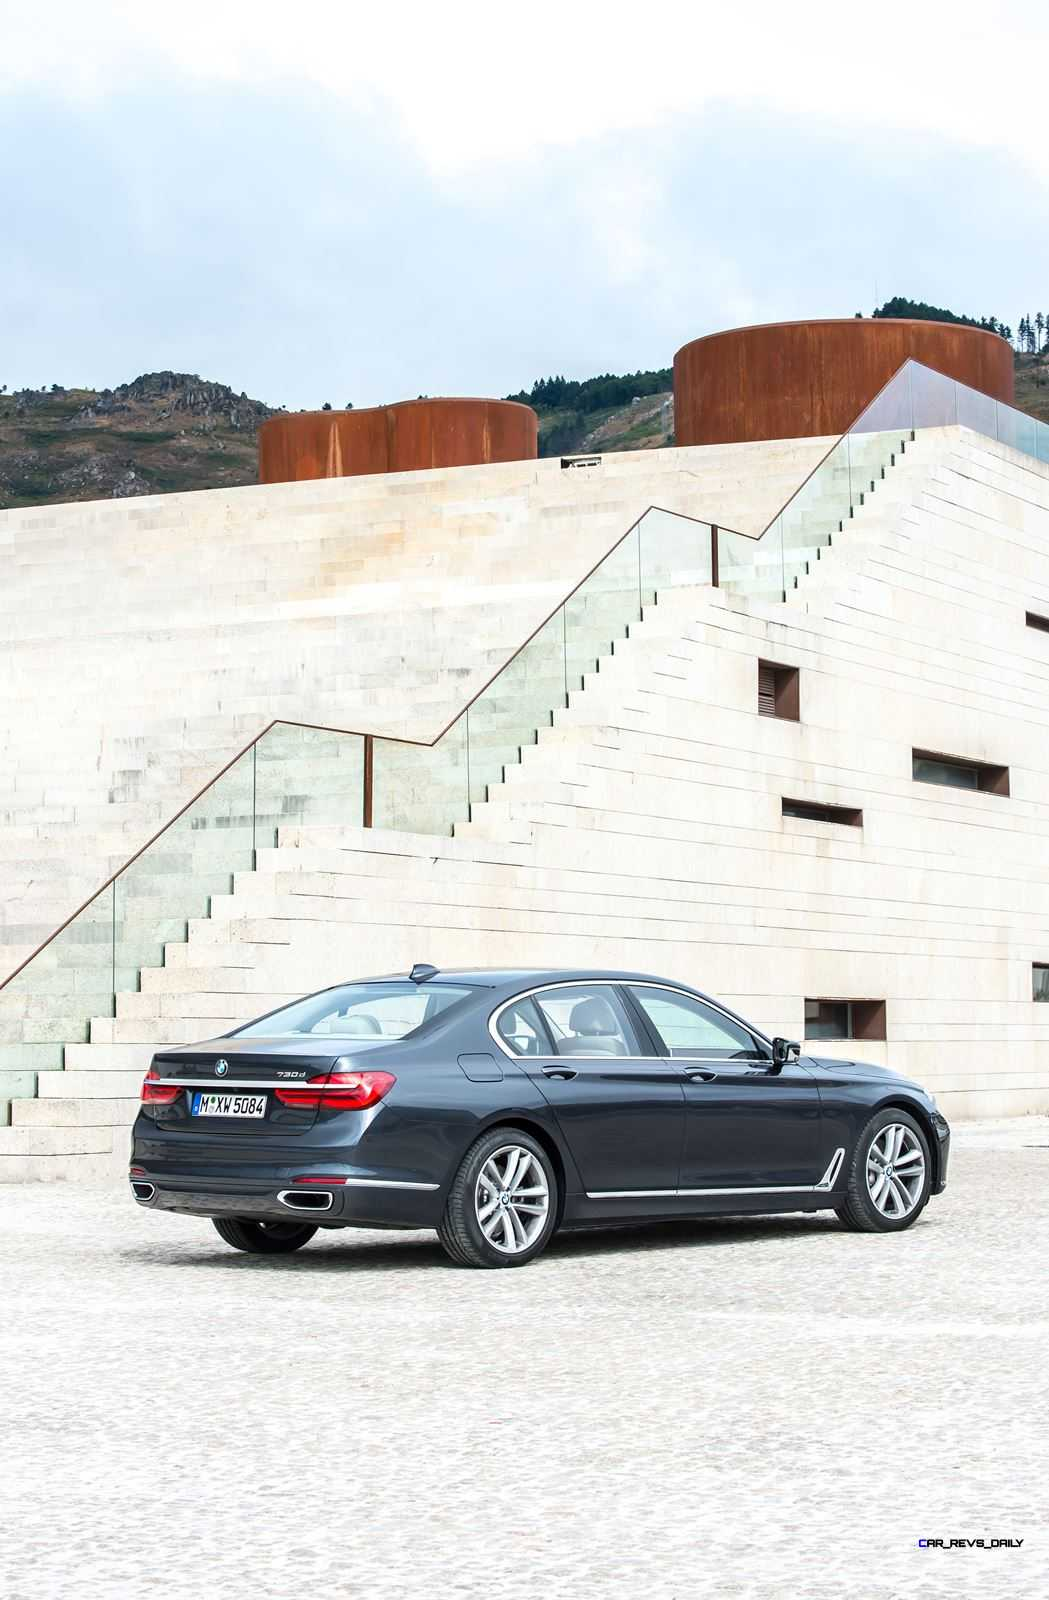 Bmw Exterior: 2016 BMW 750Li Exterior Photos 74